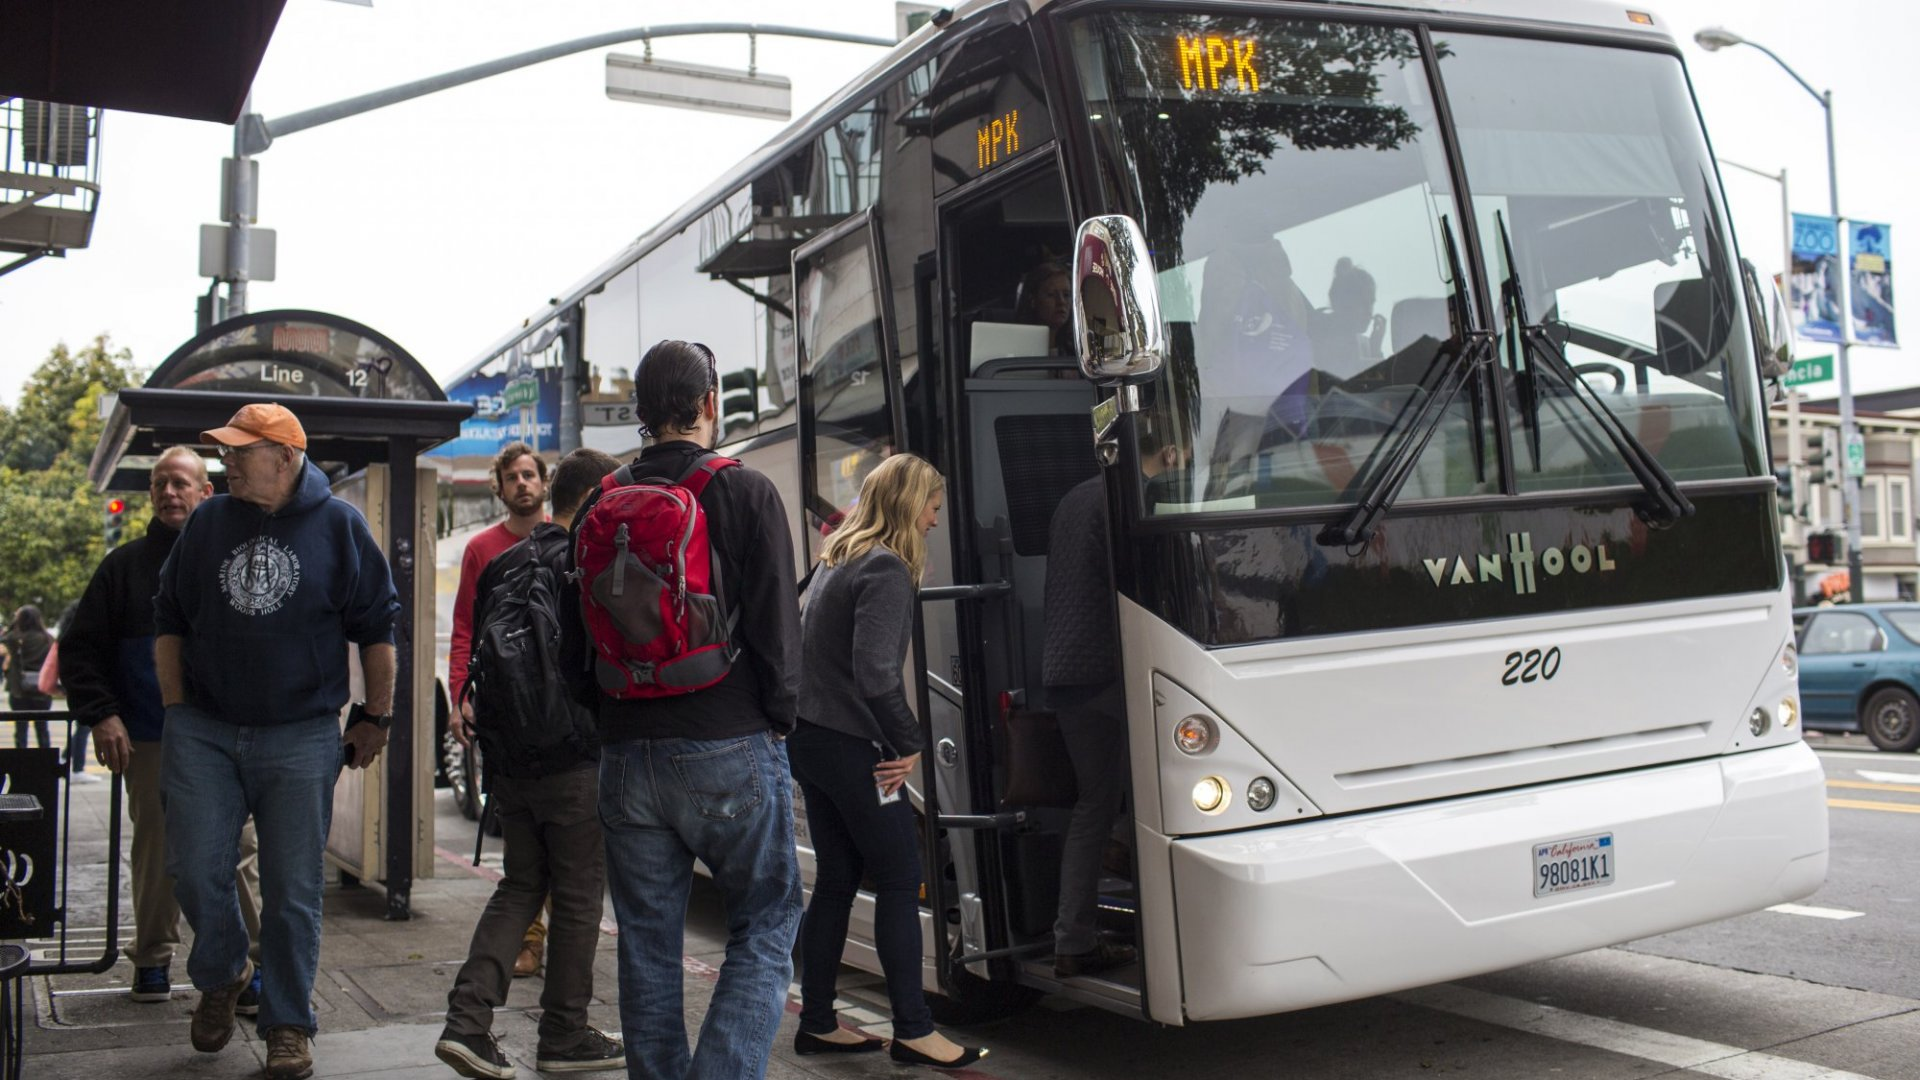 Why Andreessen Horowitz and Marc Benioff Are Betting Big on ... Buses?